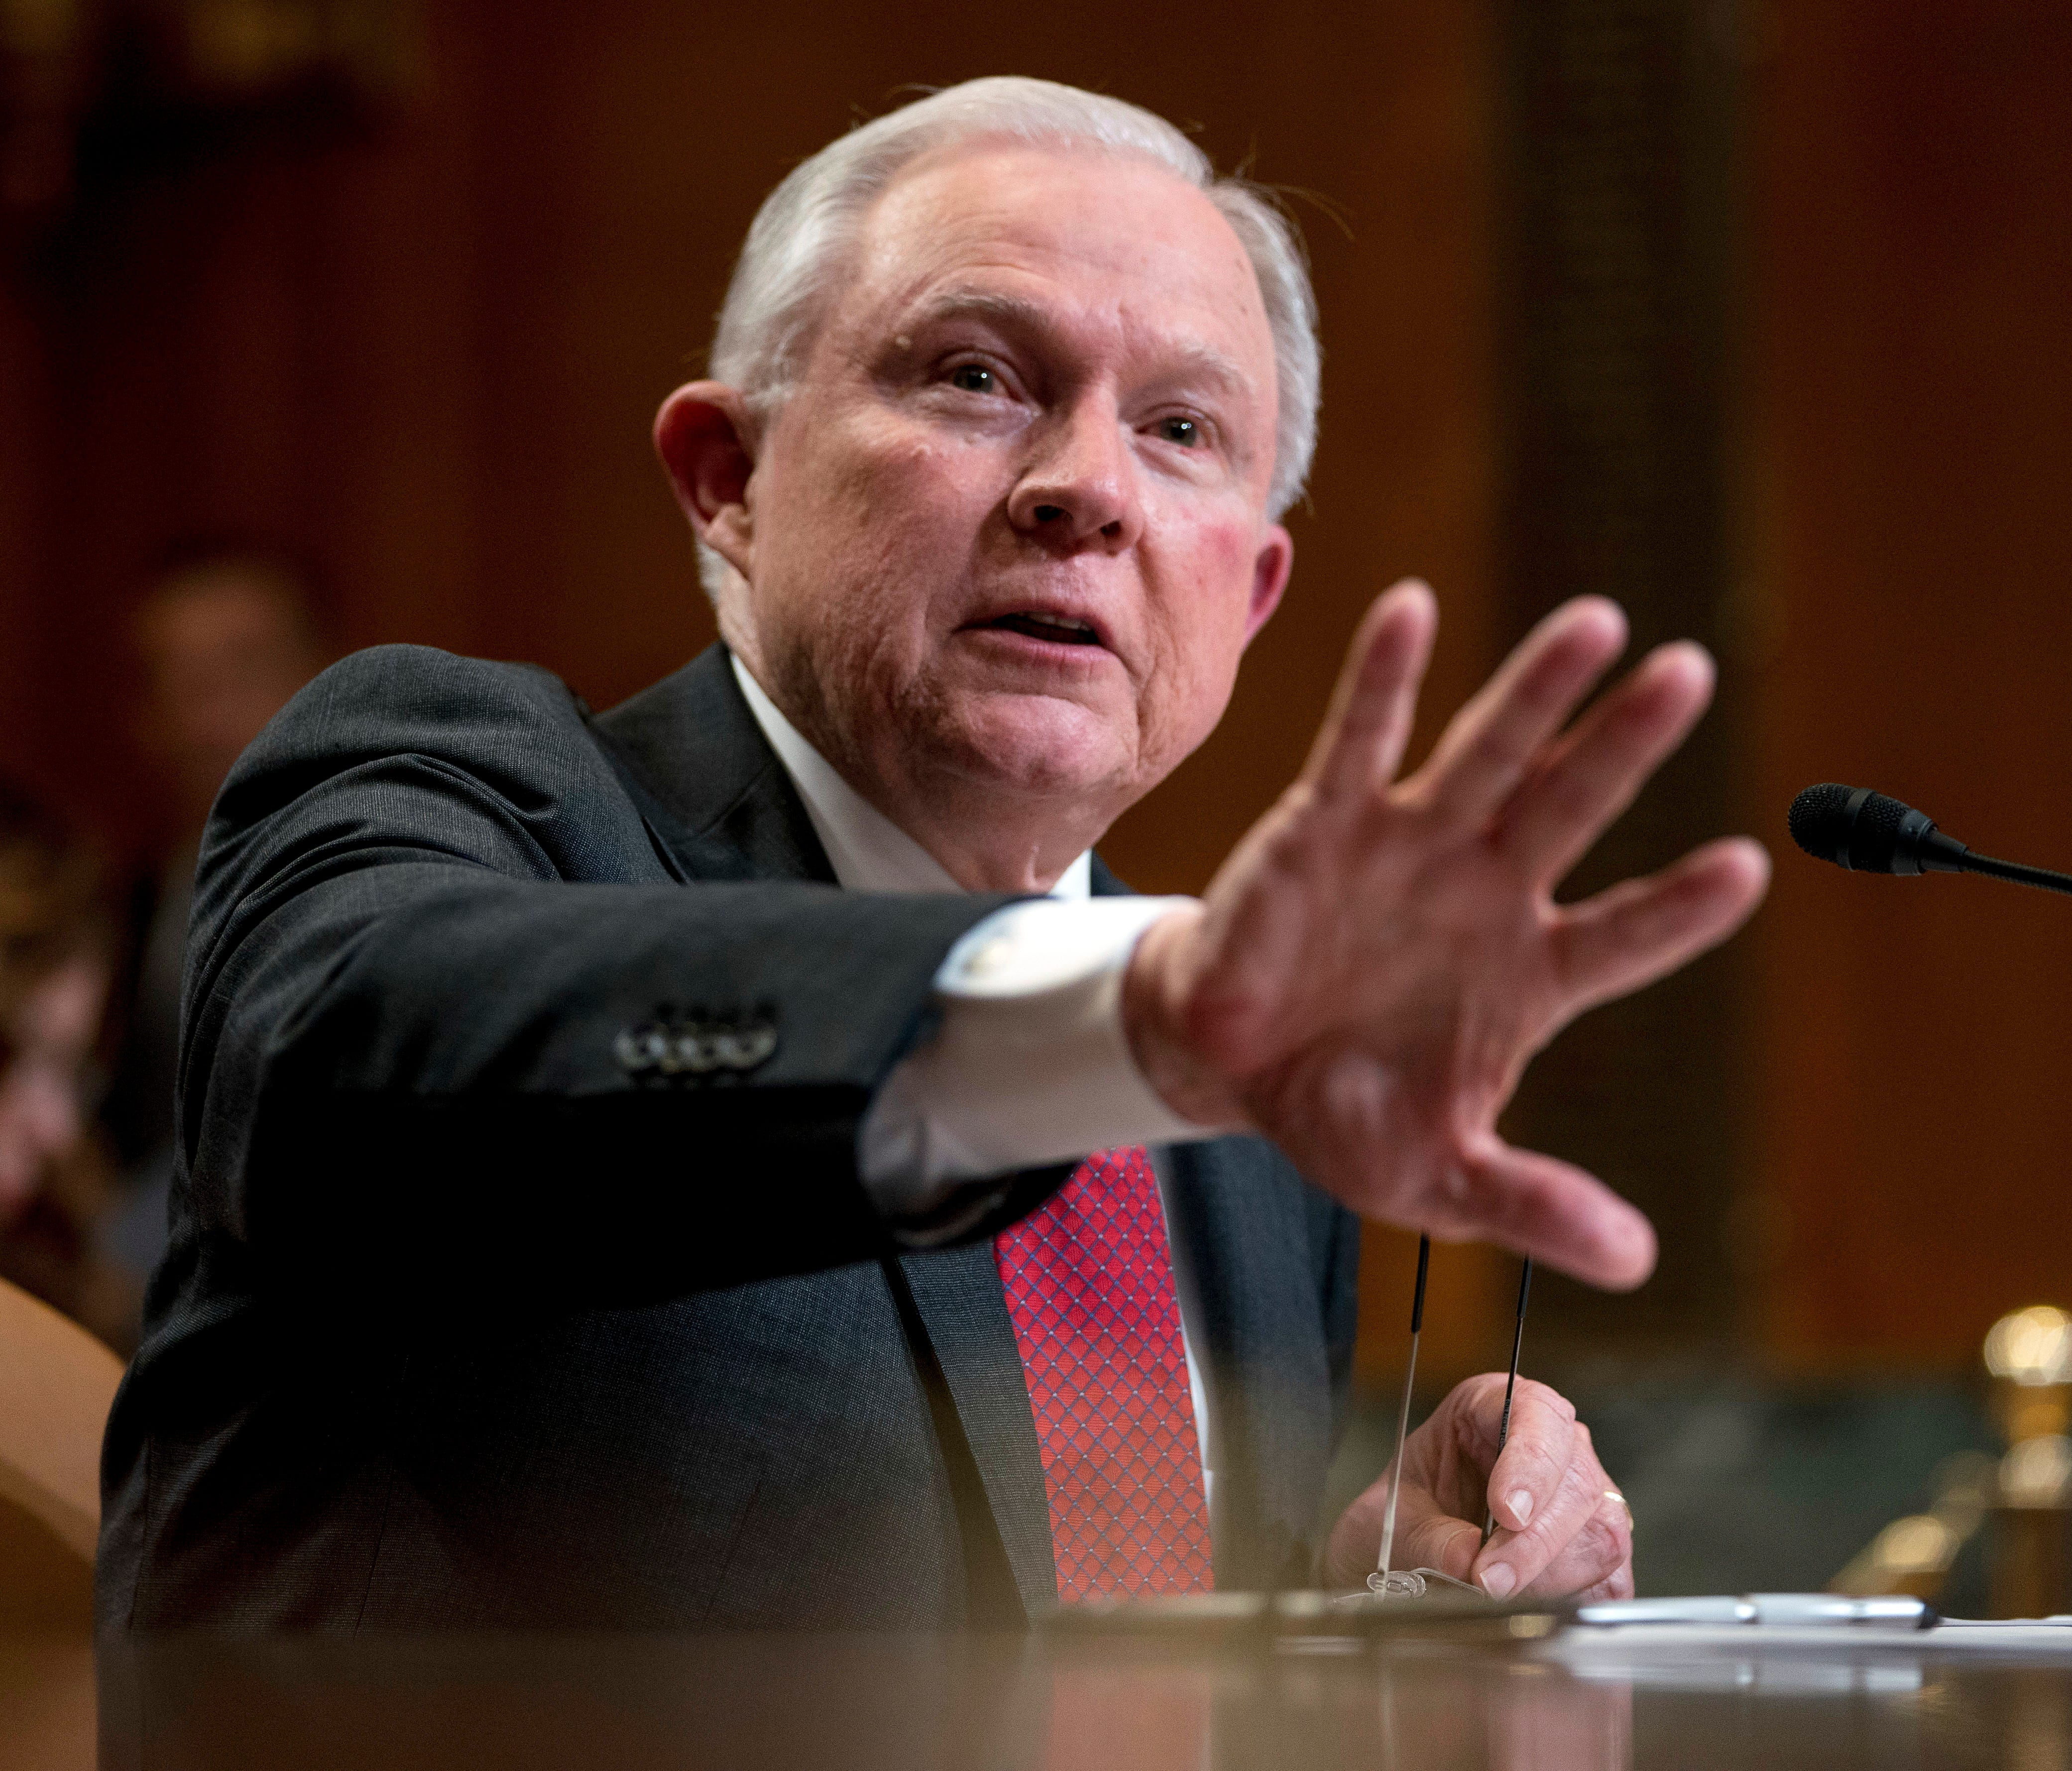 Attorney General Jeff Sessions speaks on Capitol Hill in Washington, April 25, 2018.